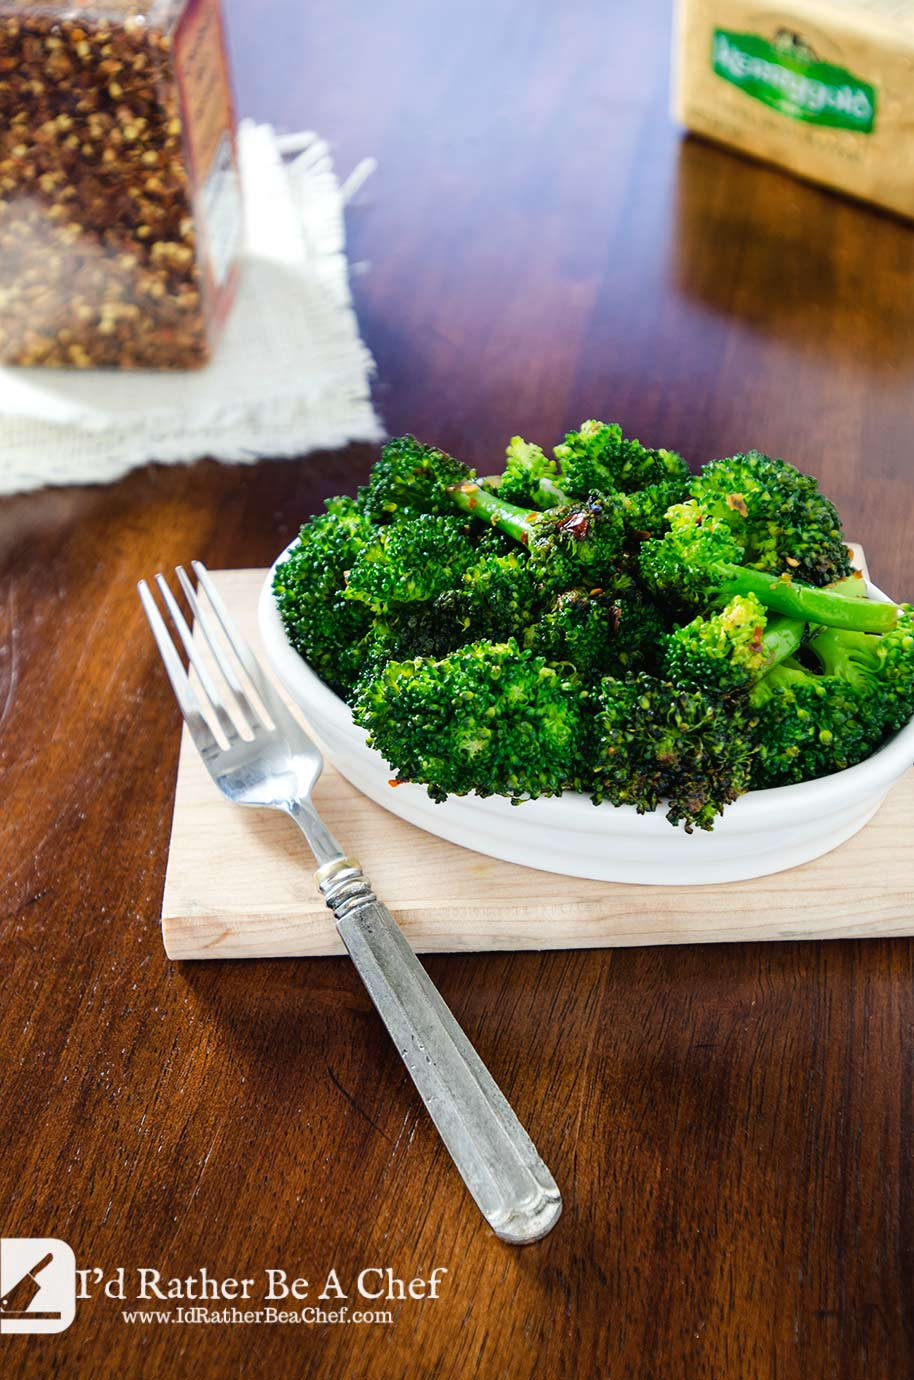 Packed full of flavor, this Italian Broccoli Recipe is a winner for your dinner table. It is just so good, so easy and so good for you!